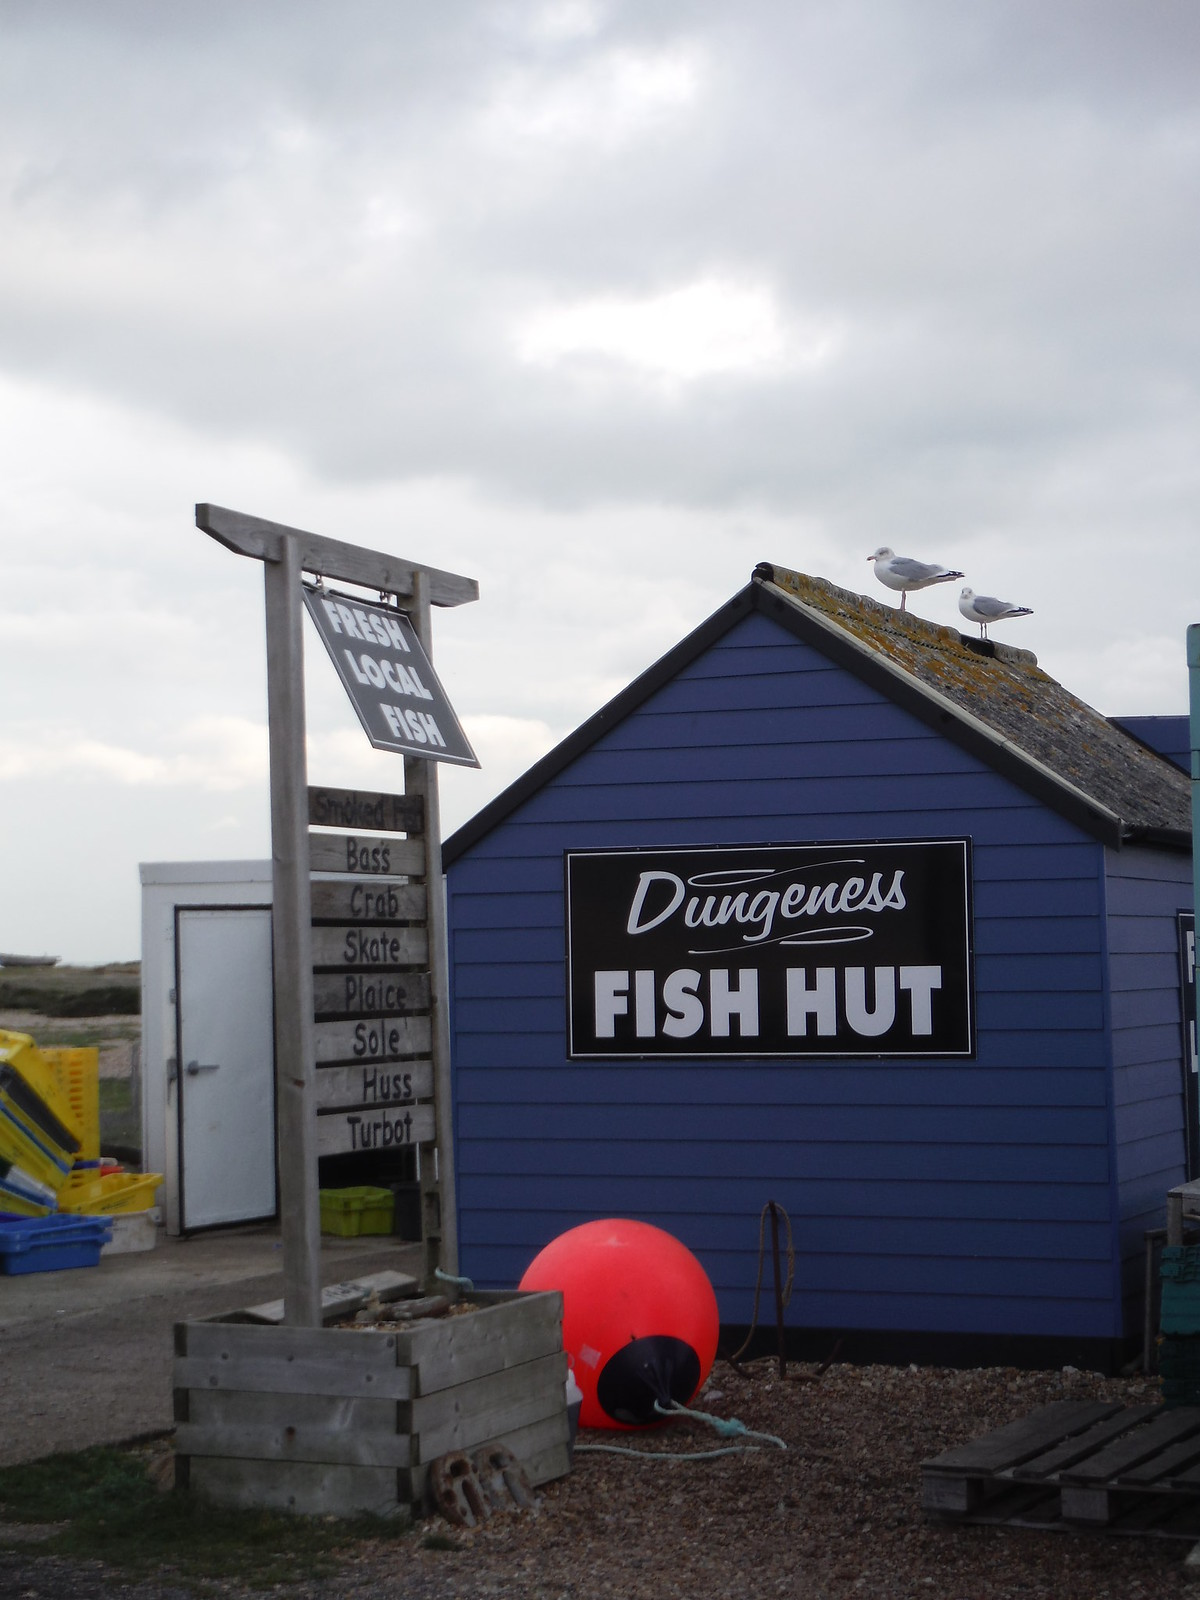 Dungeness Fish Hut SWC 154 - Rye to Dungeness and Lydd-on-Sea or Lydd or Circular